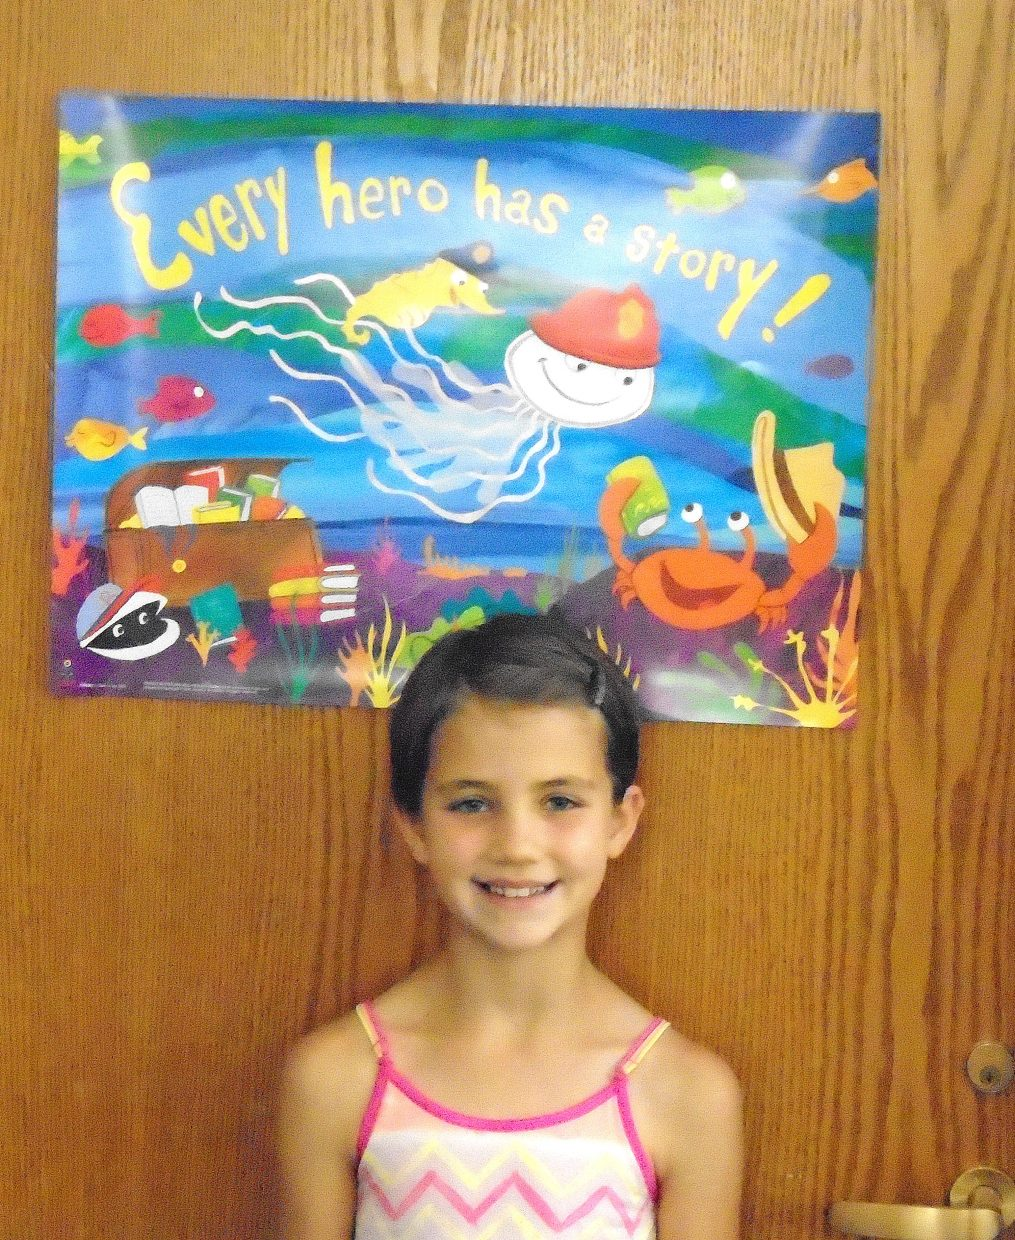 Isabelle Mathey is this week's Reader of the Week.